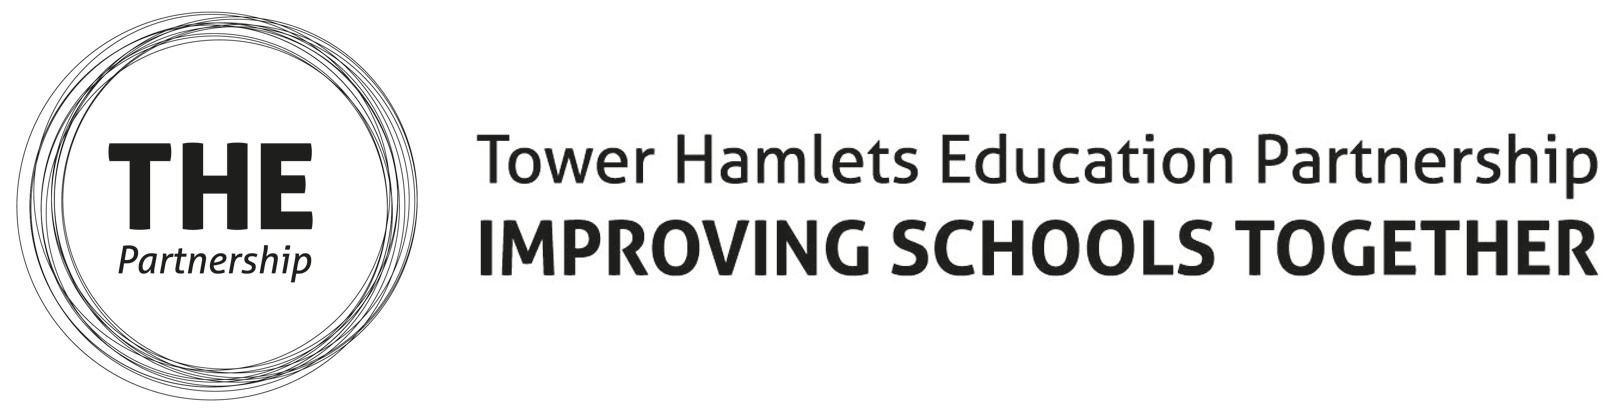 Tower Hamlets Education Partnership